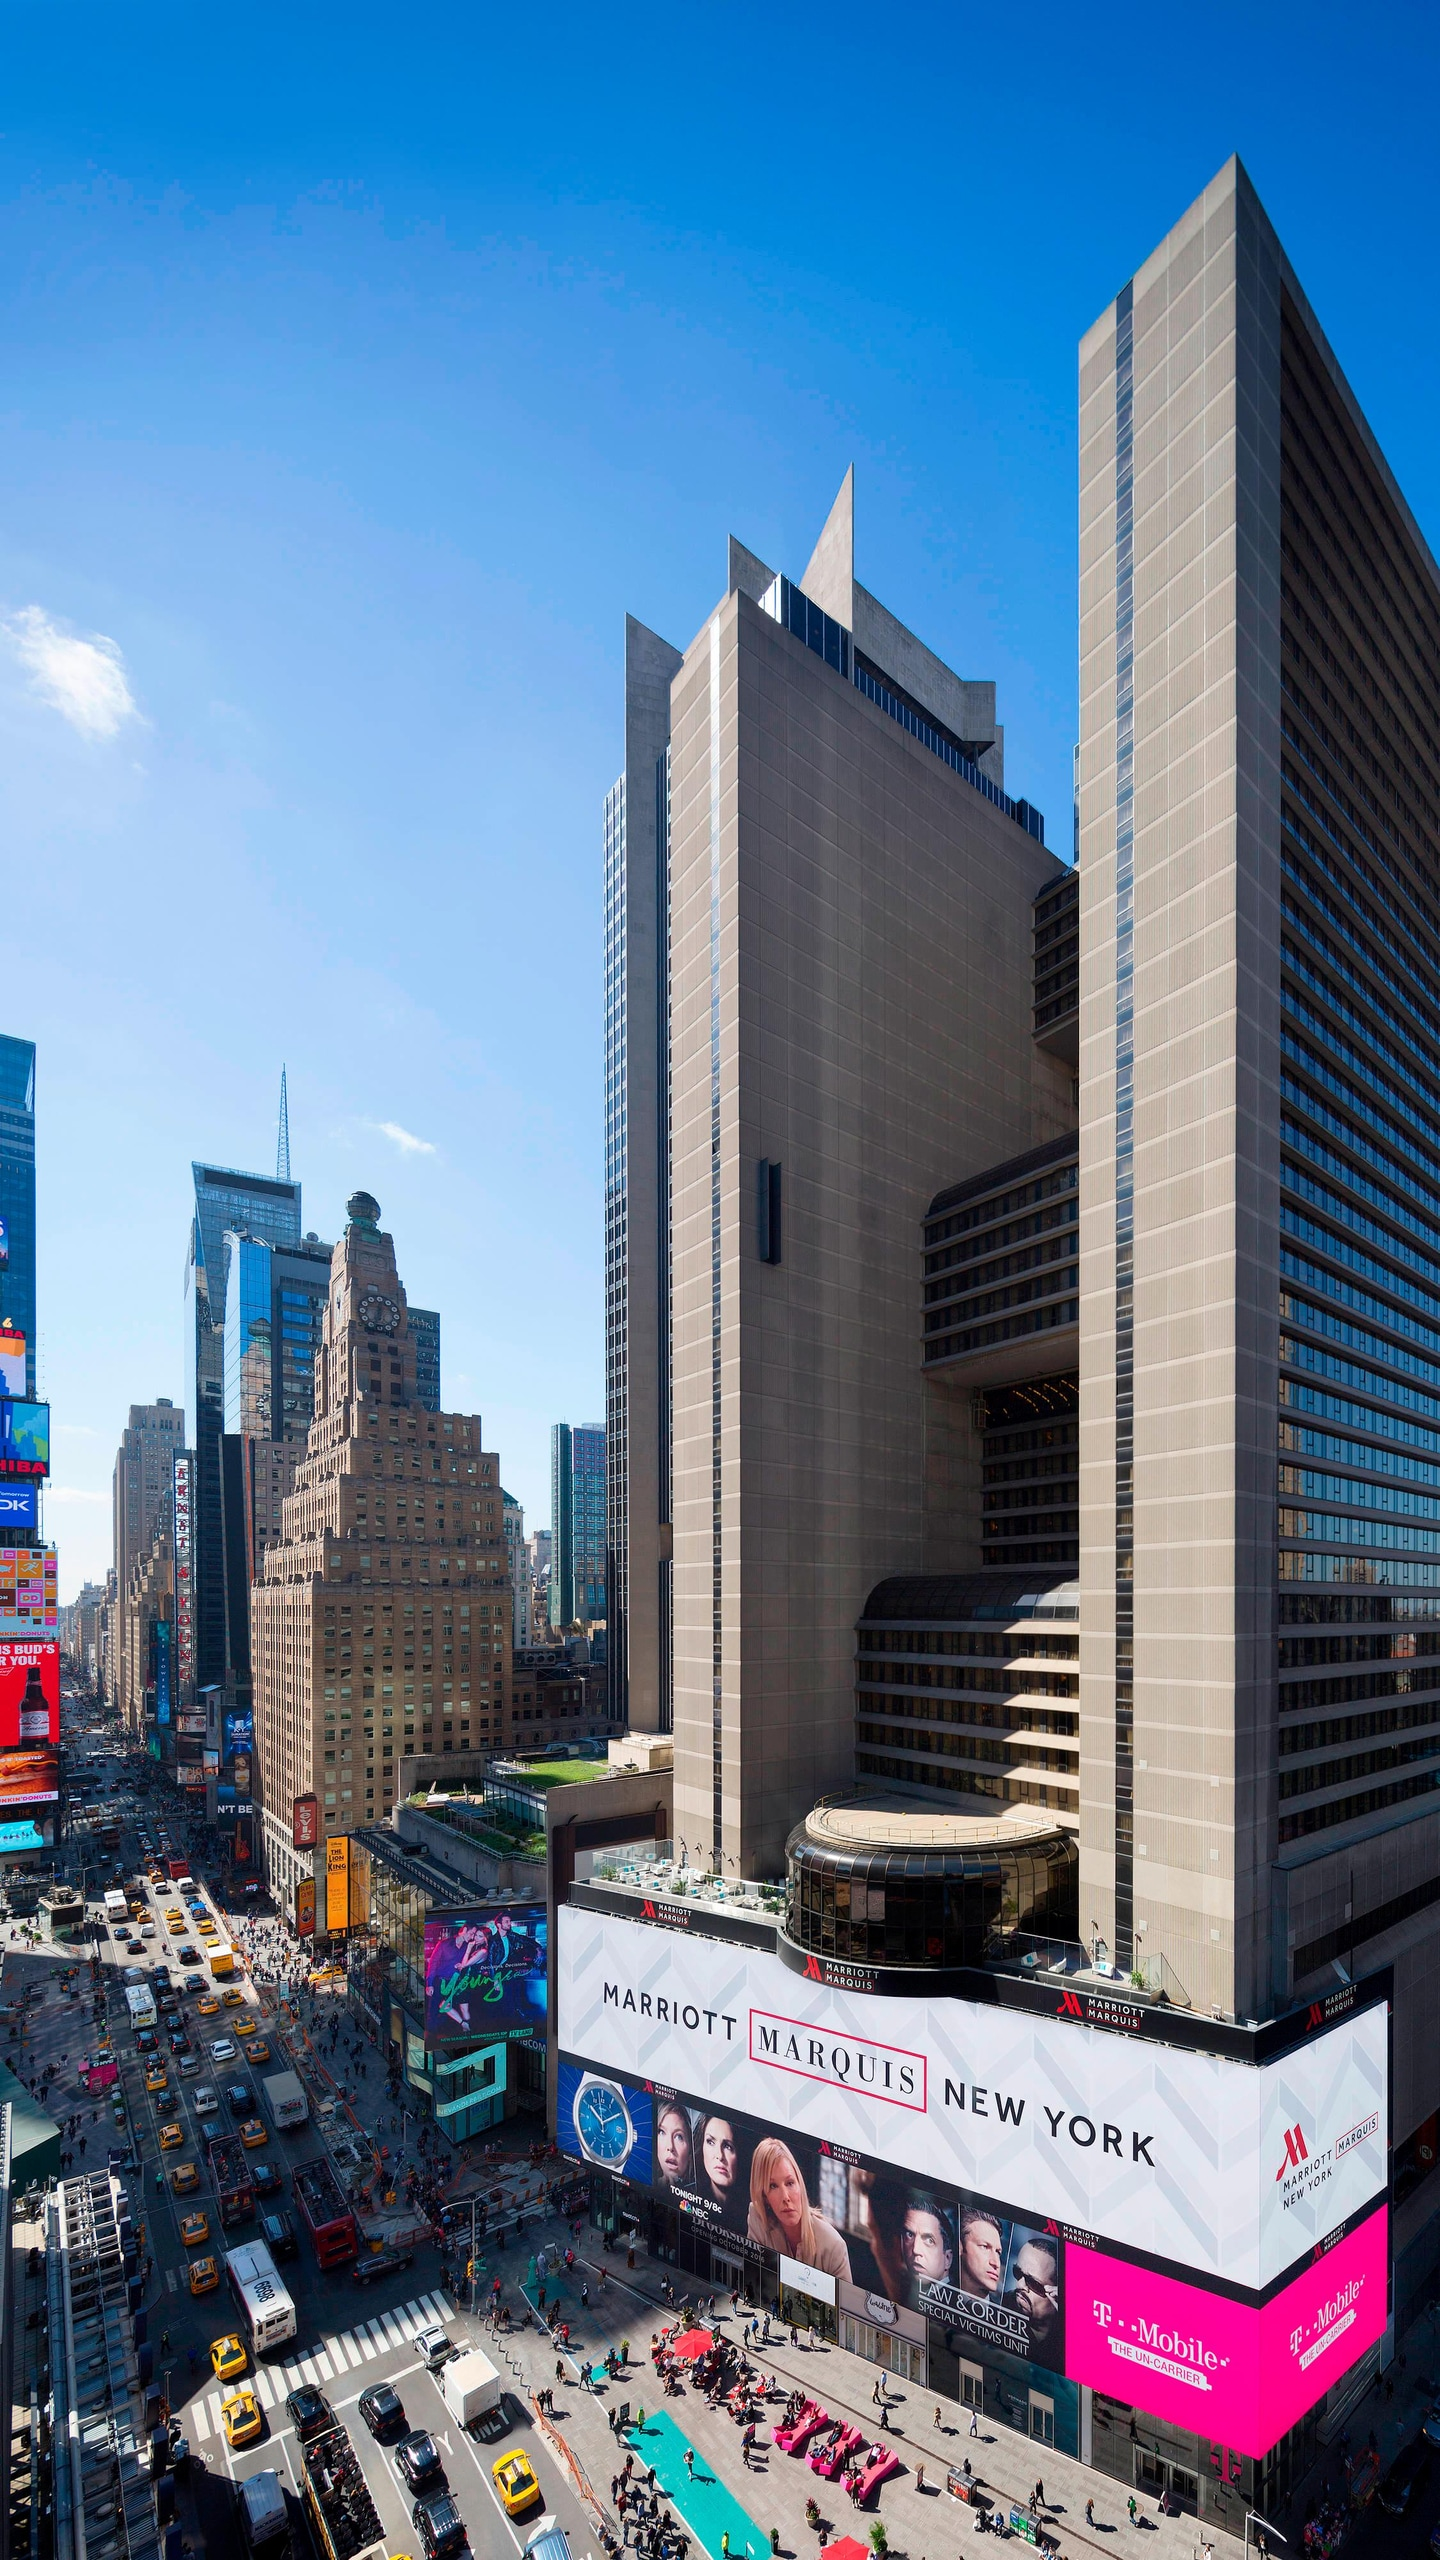 Marriott Marquis Times Square NYC.